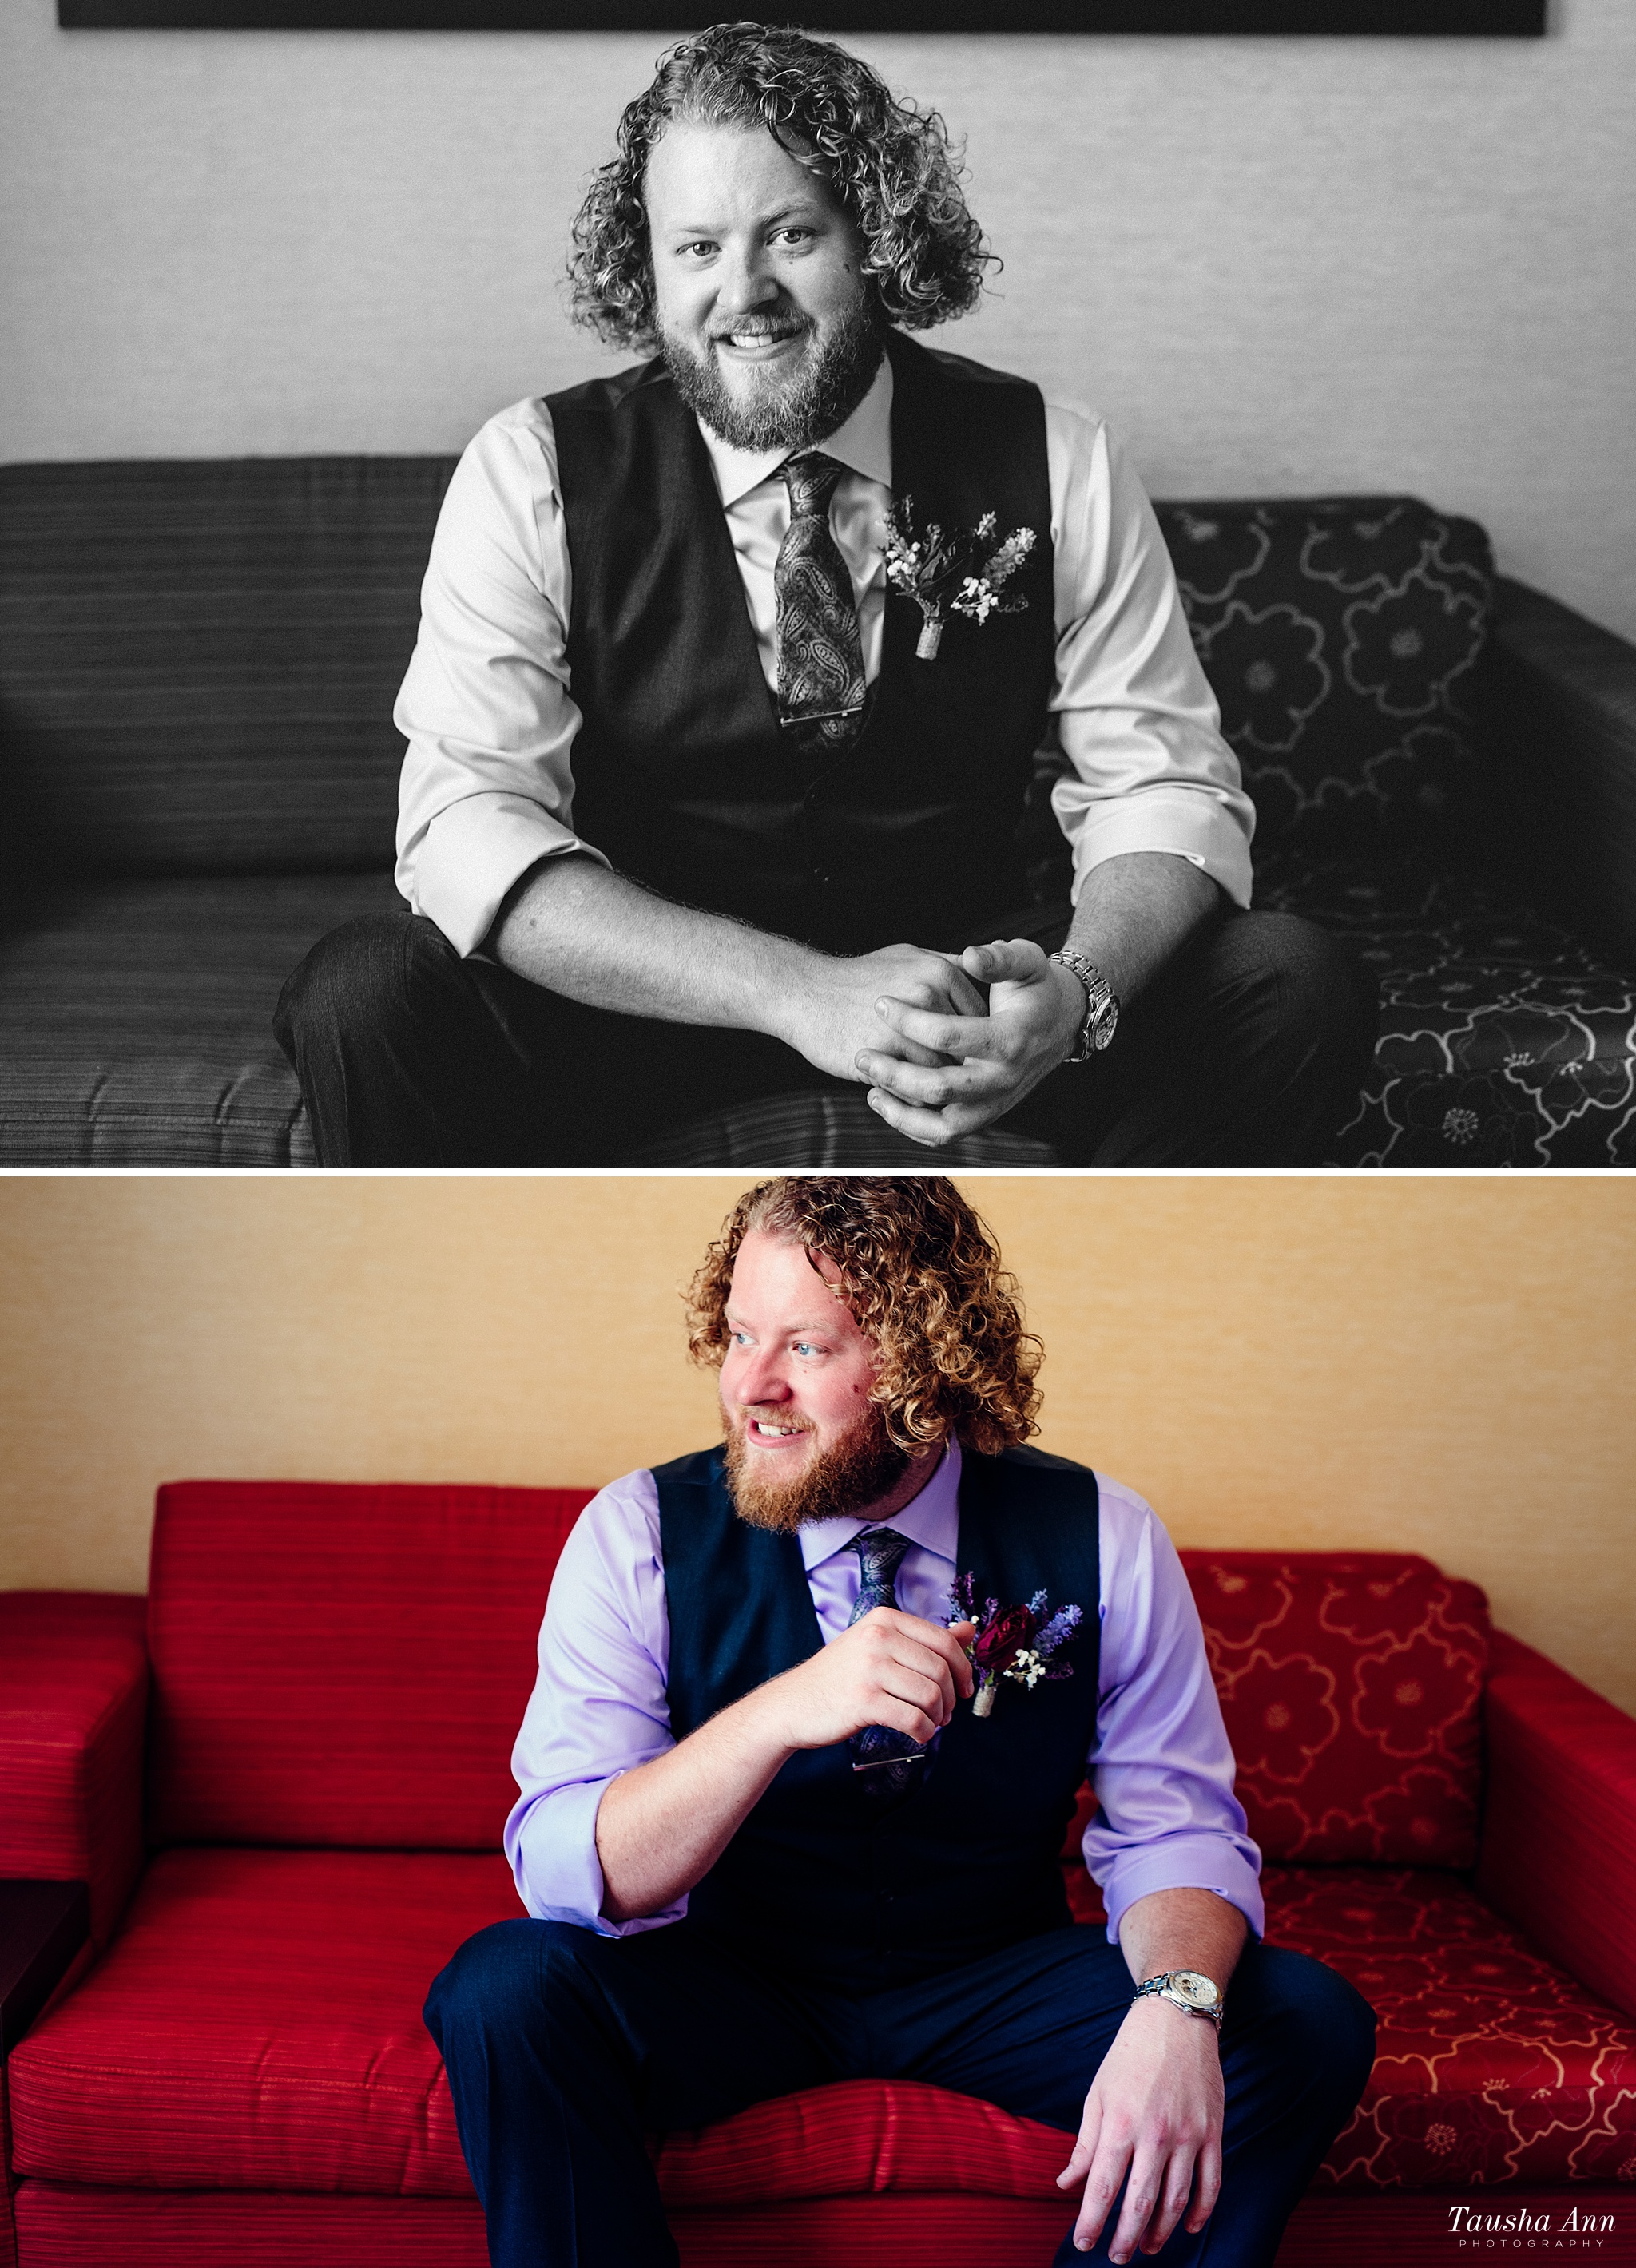 Portraits of Groom sitting on red couch in hotel room.